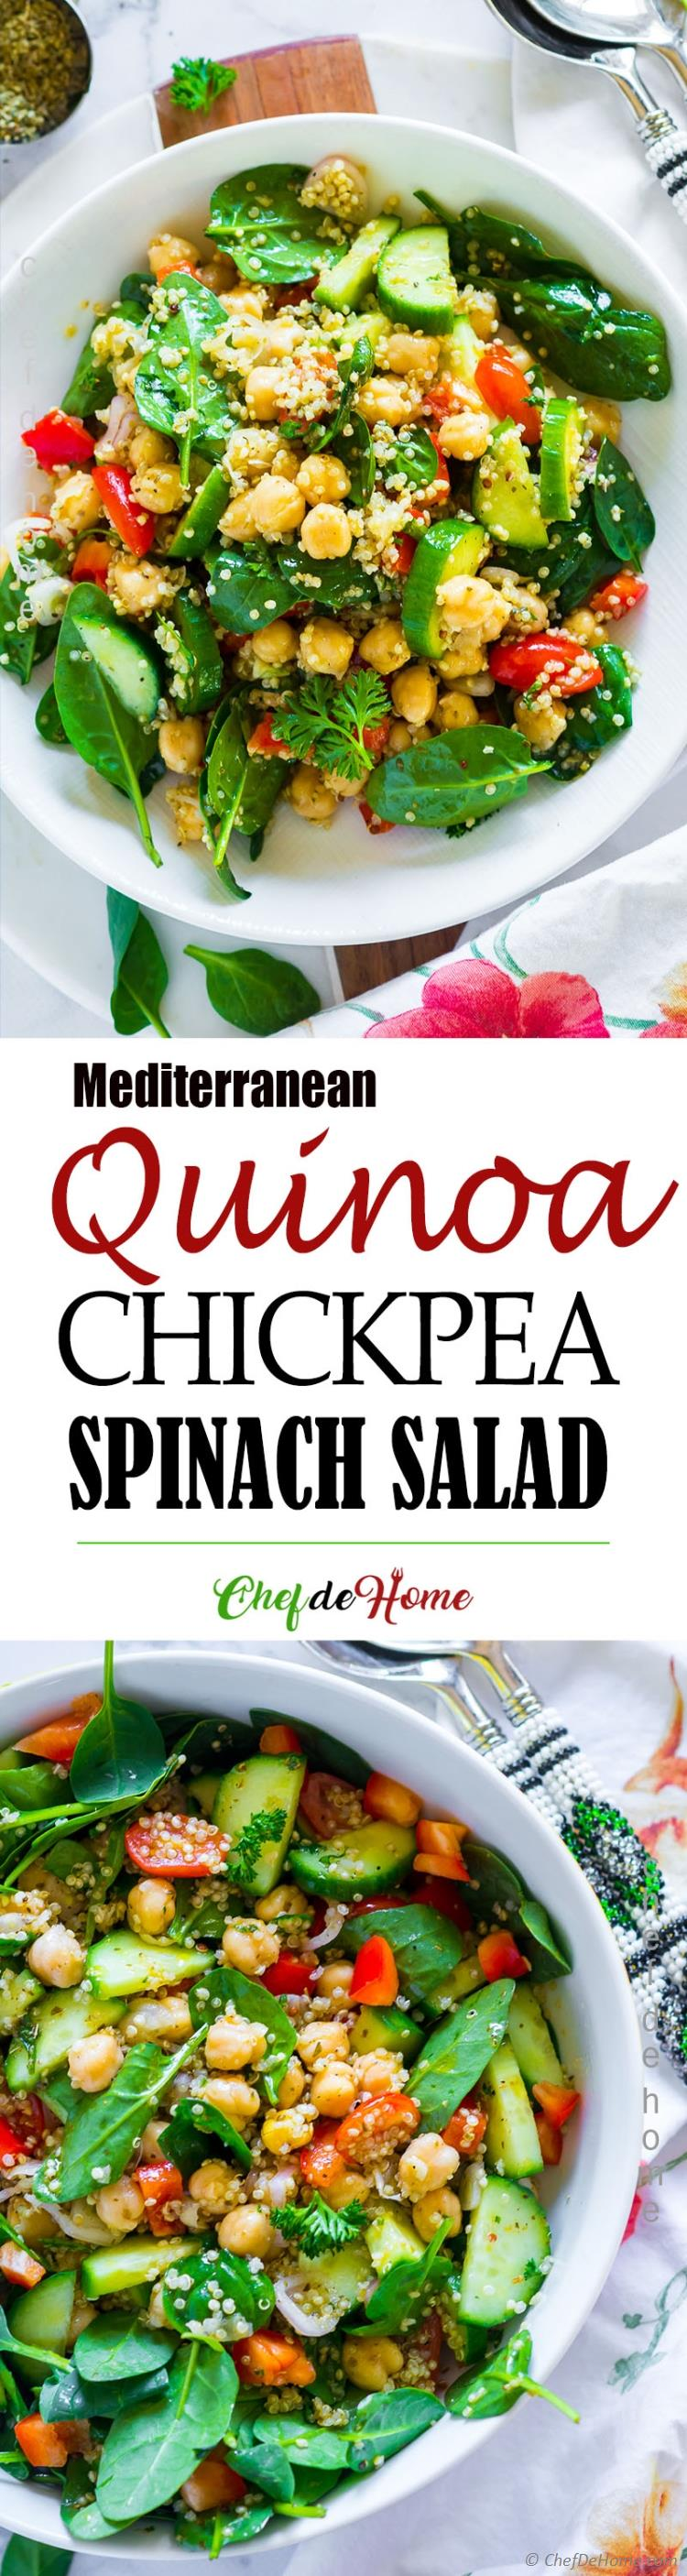 Chickpea Quinoa Spinach Salad with Greek dressing